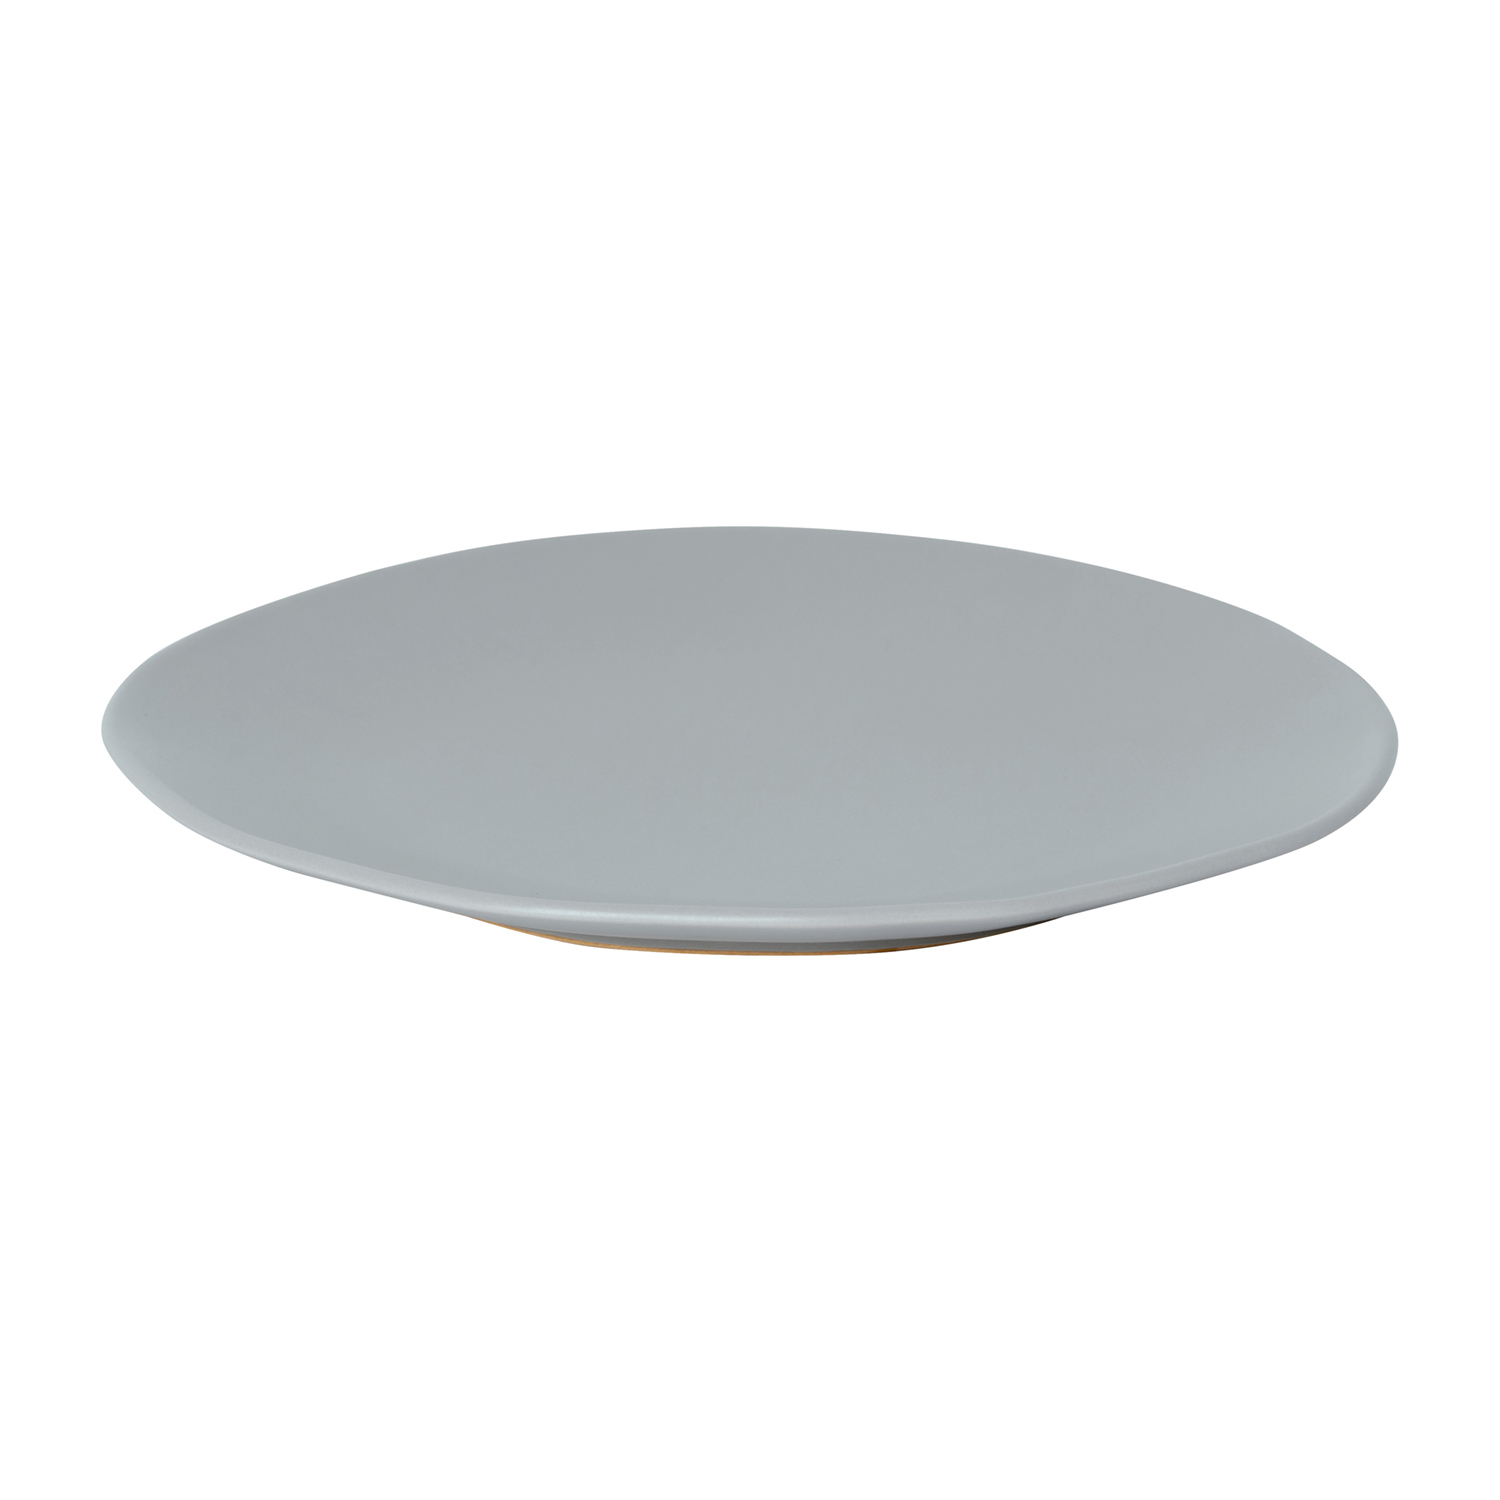 General Eclectic: Freya Dinner Plate - Mist image